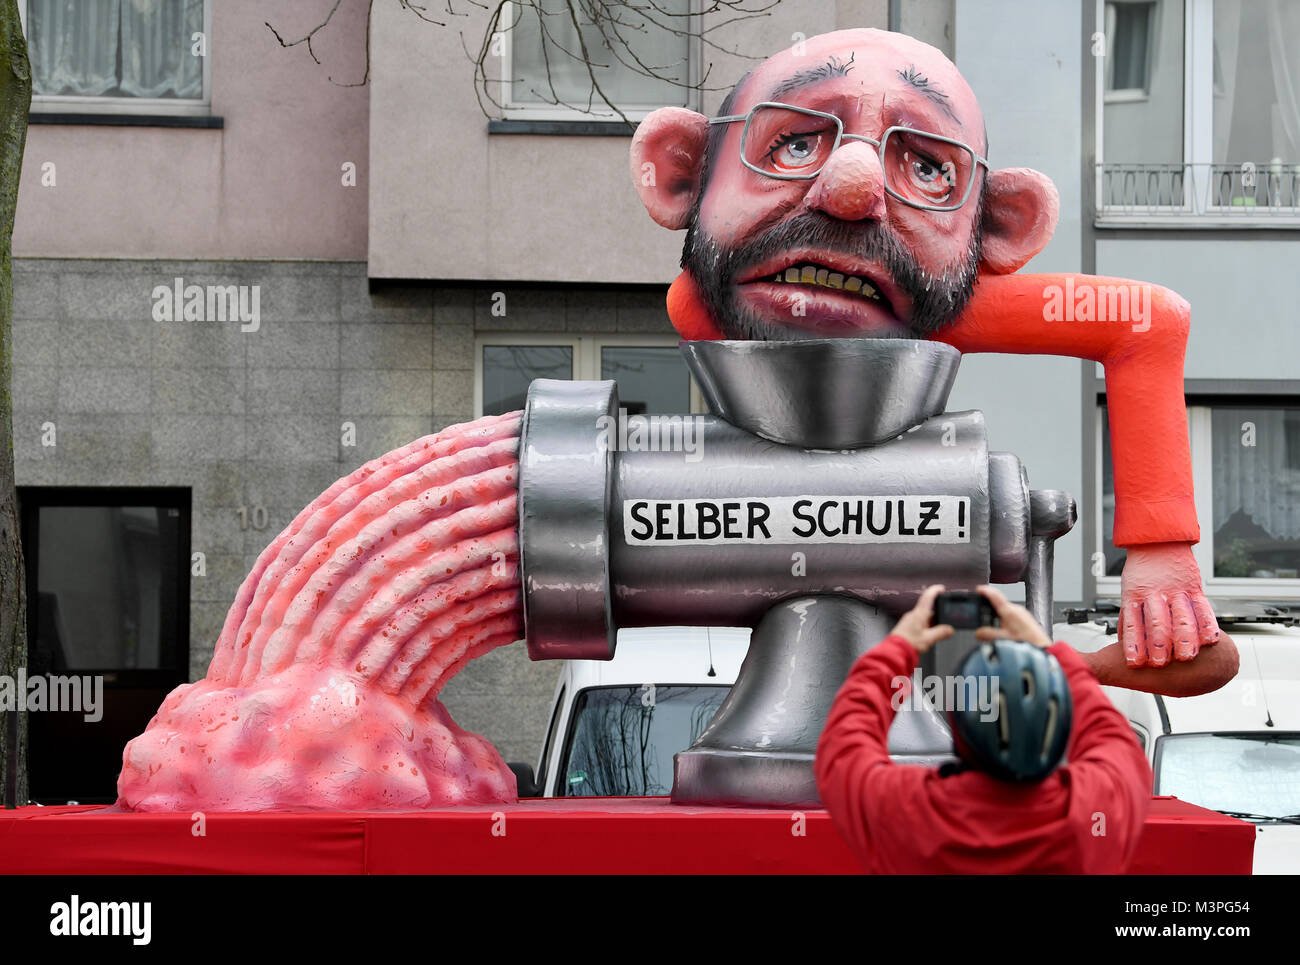 Duesseldorf, Germany. 12th Feb, 2018. A political caricature float featuring 'Martin Schulz, leader of the SPD' - Stock Image